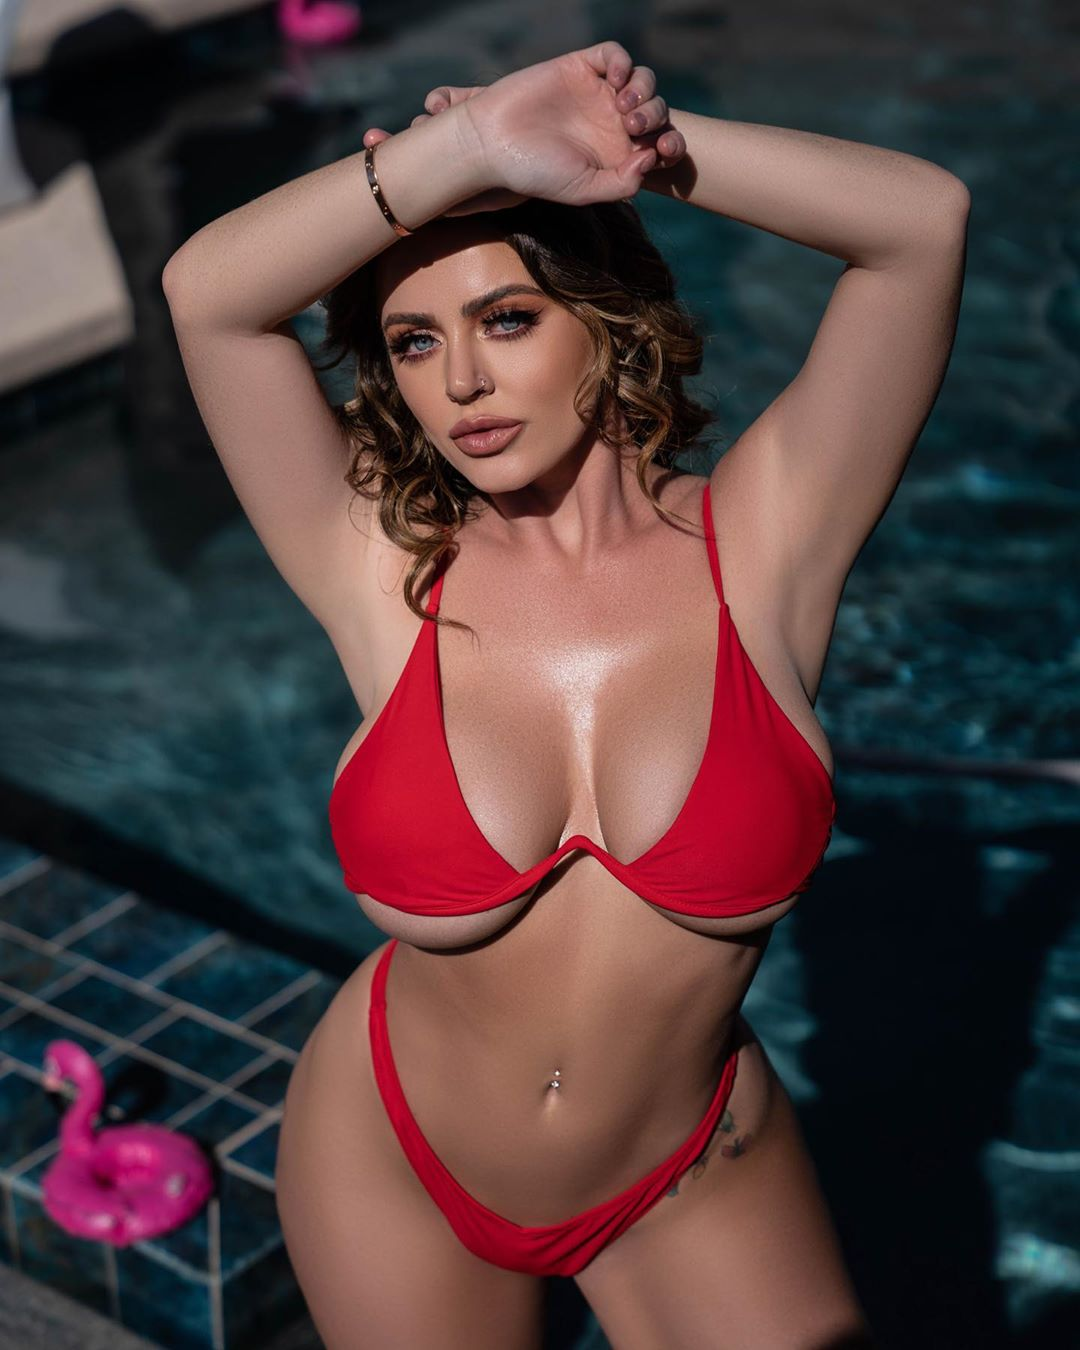 Sophie Dee Hot Pics and Bio | Picture Perfect